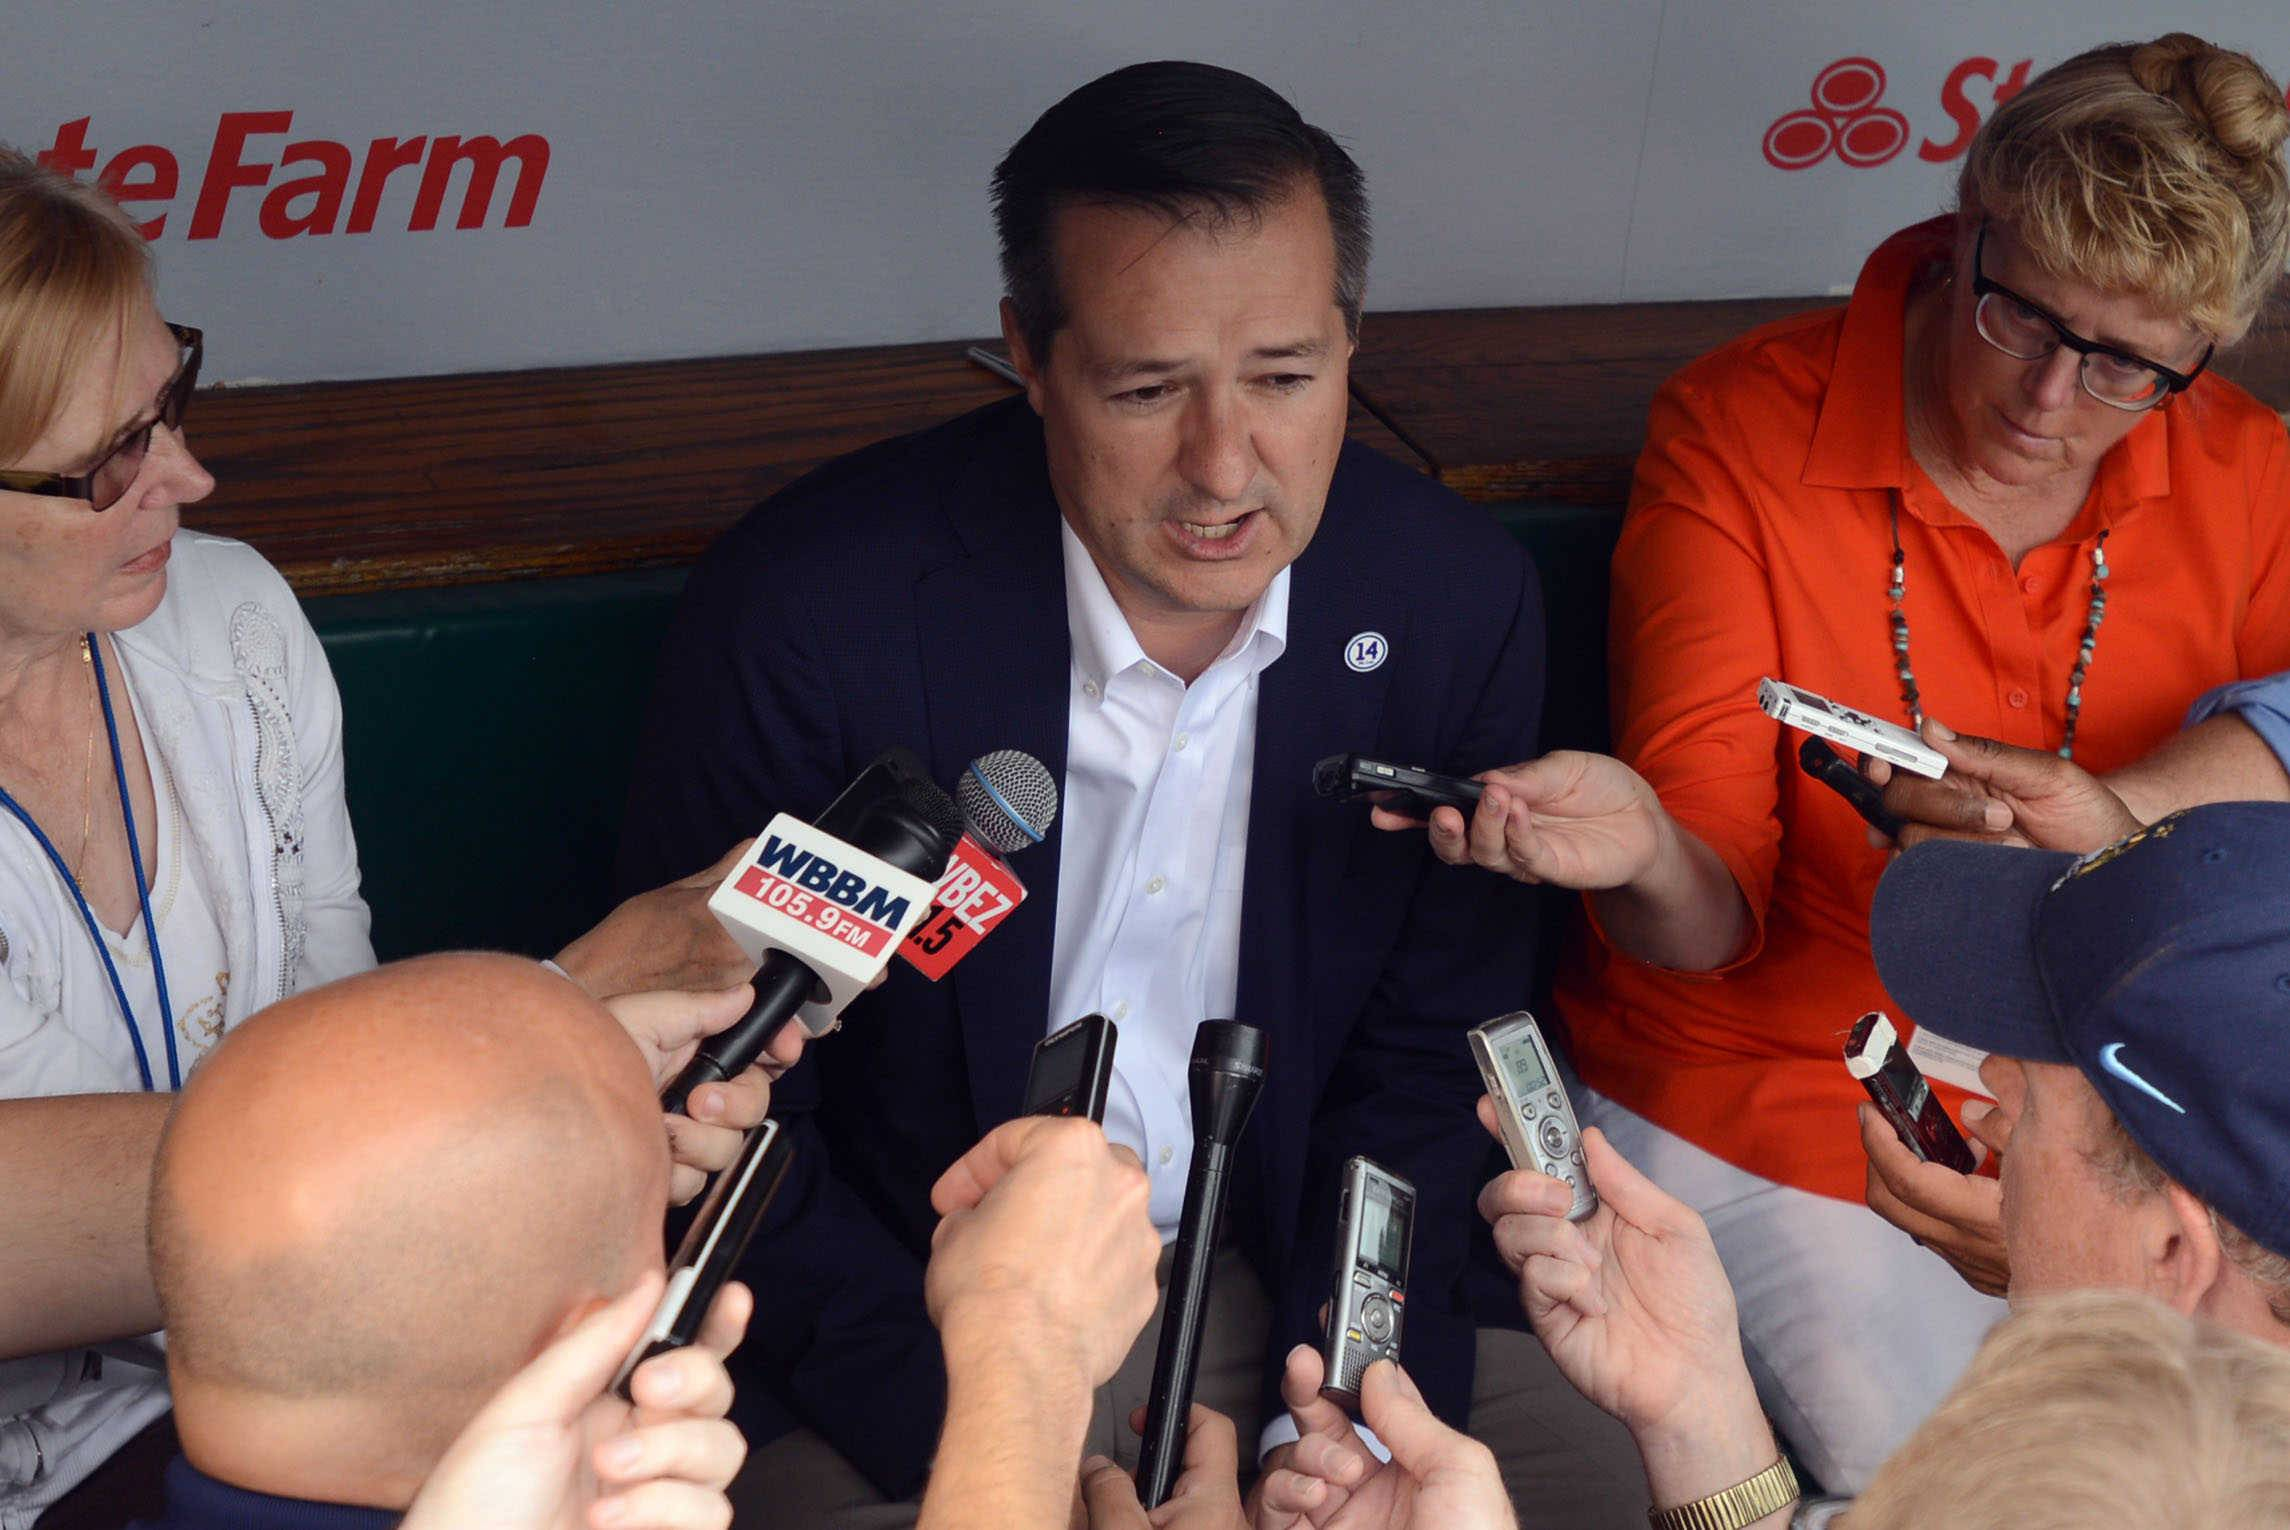 Chicago Cubs owner Tom Ricketts says he's most proud that his organization stuck with the rebuilding plan, and that no one panicked when things got rough.